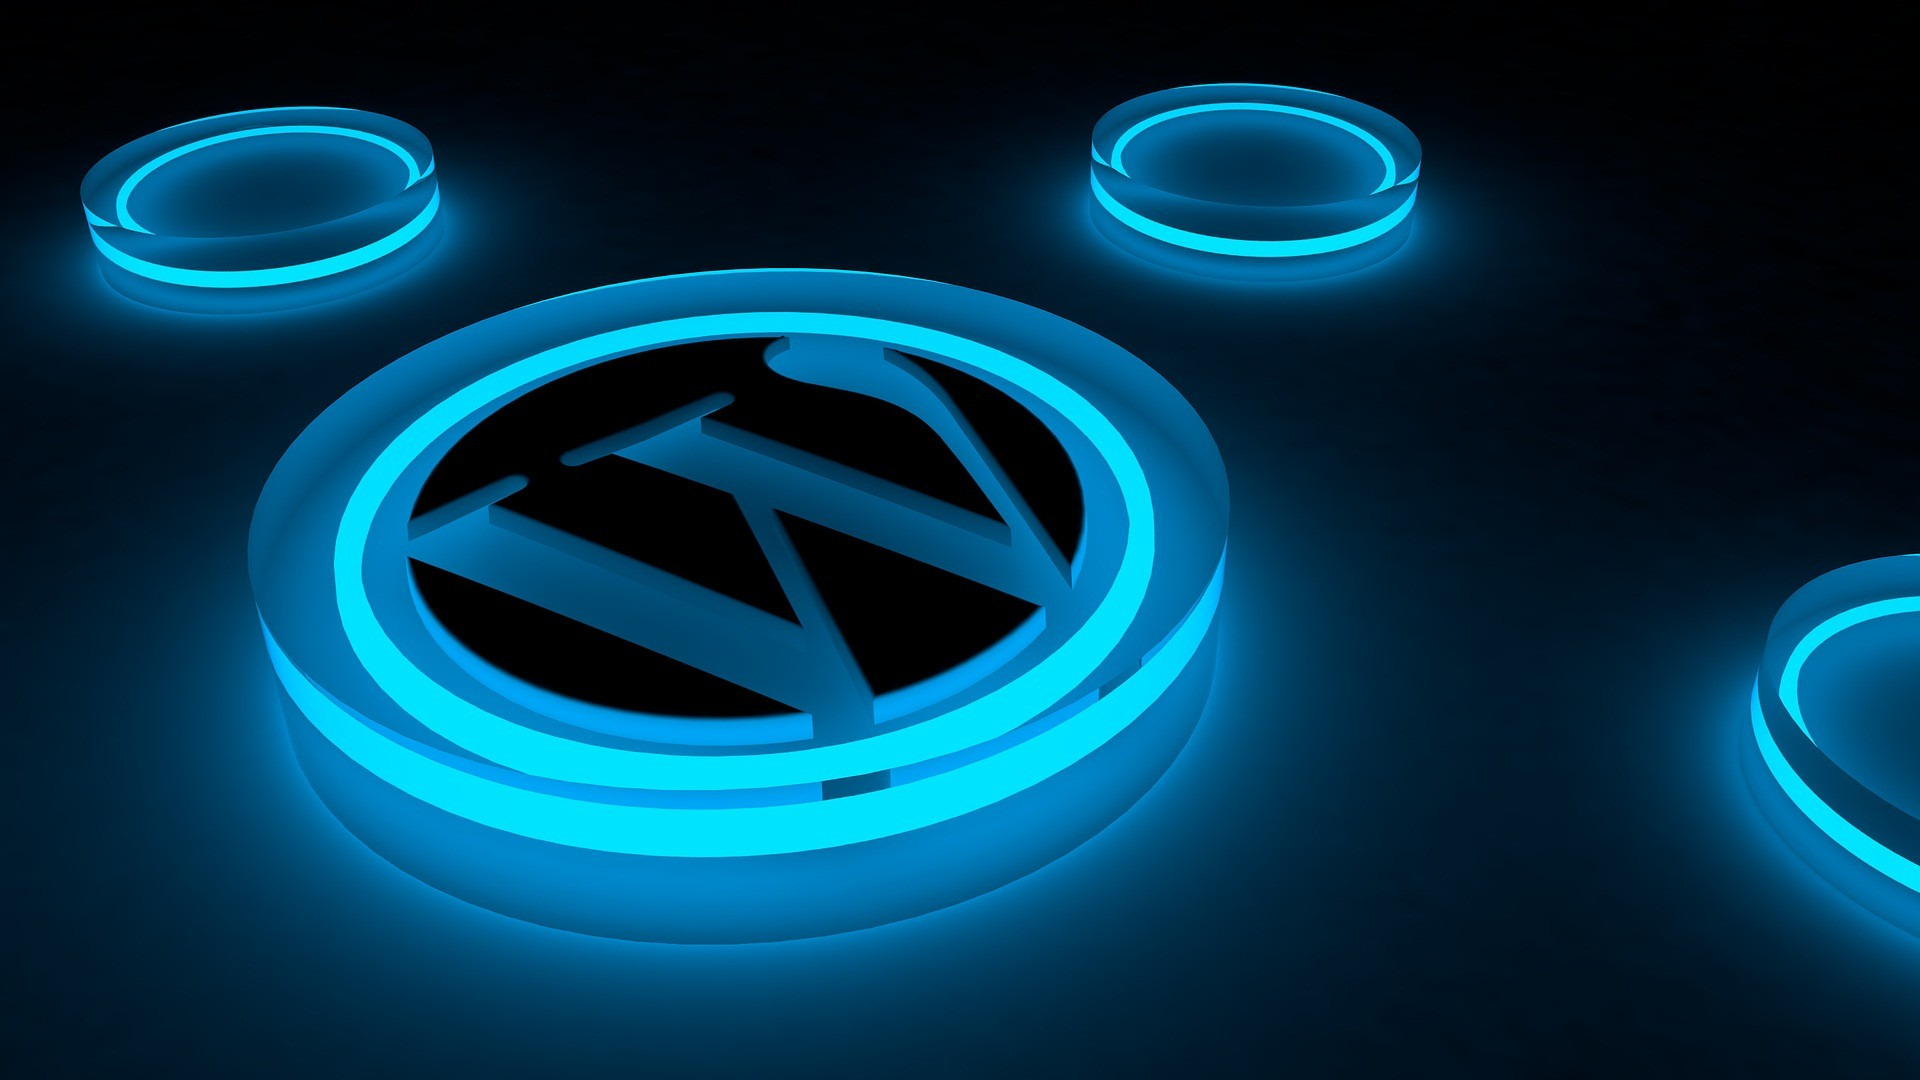 Dark blue background with 3 small an 1 large lit blue circles the large one has the WordPress logo on it.